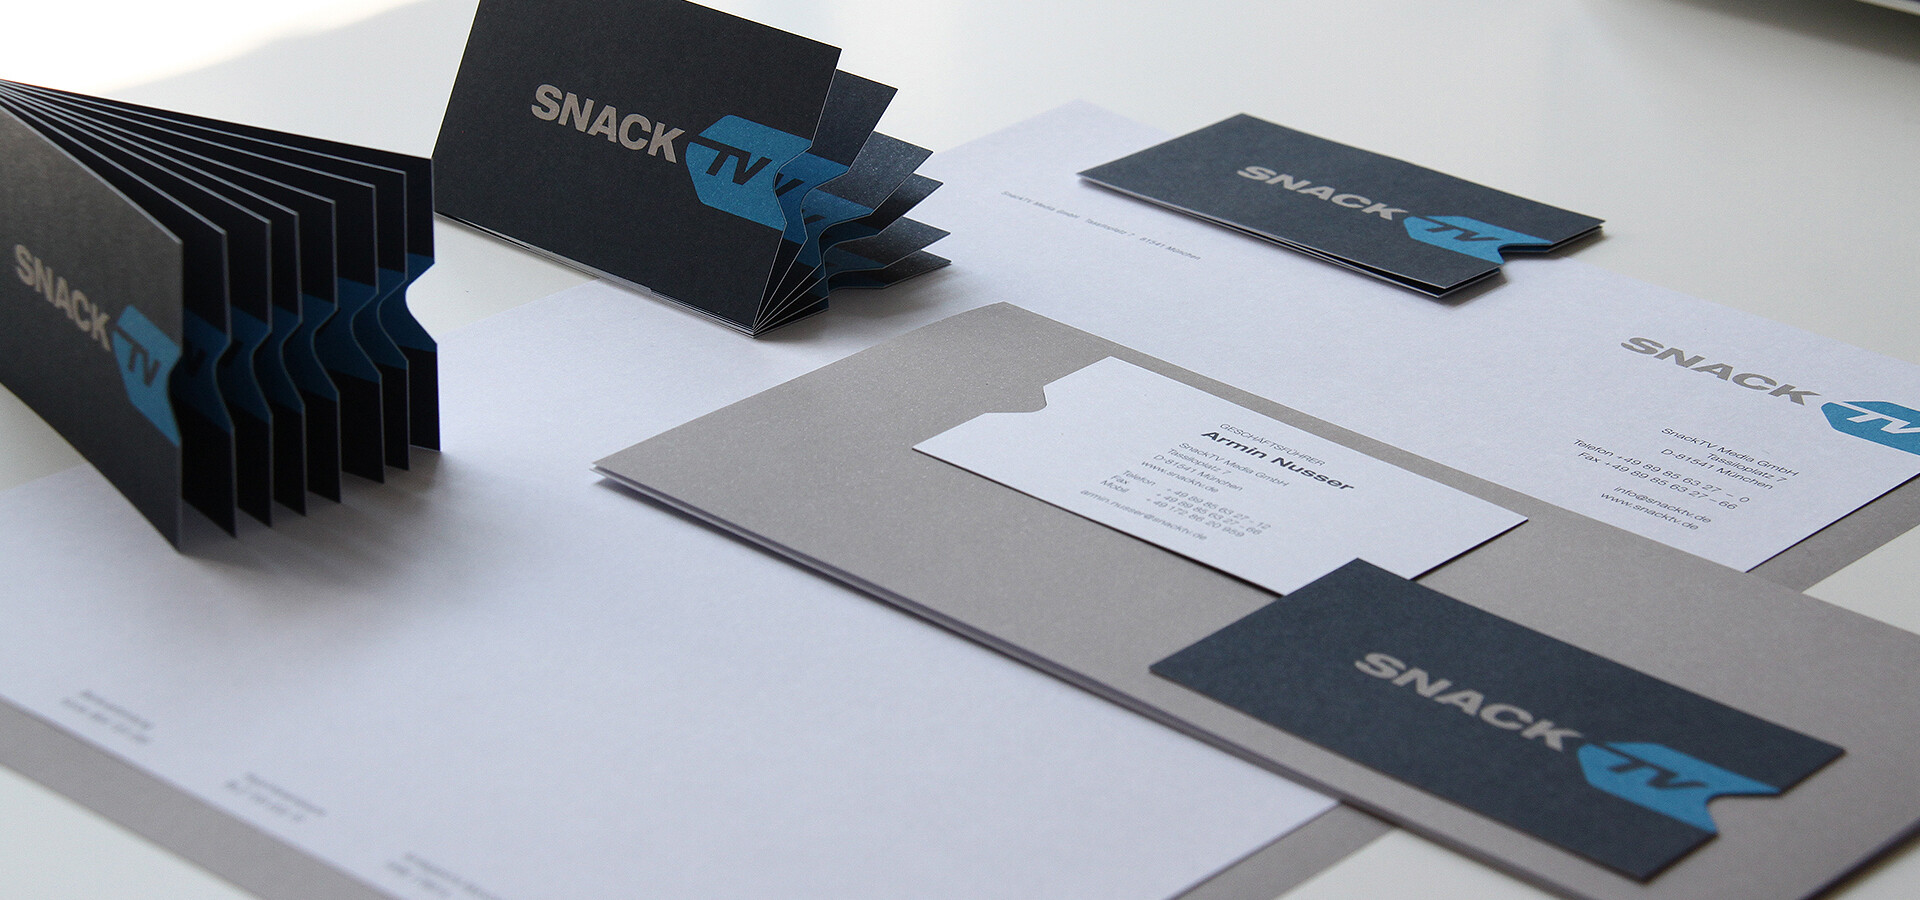 SANMIGUEL Corporate Design Agentur München